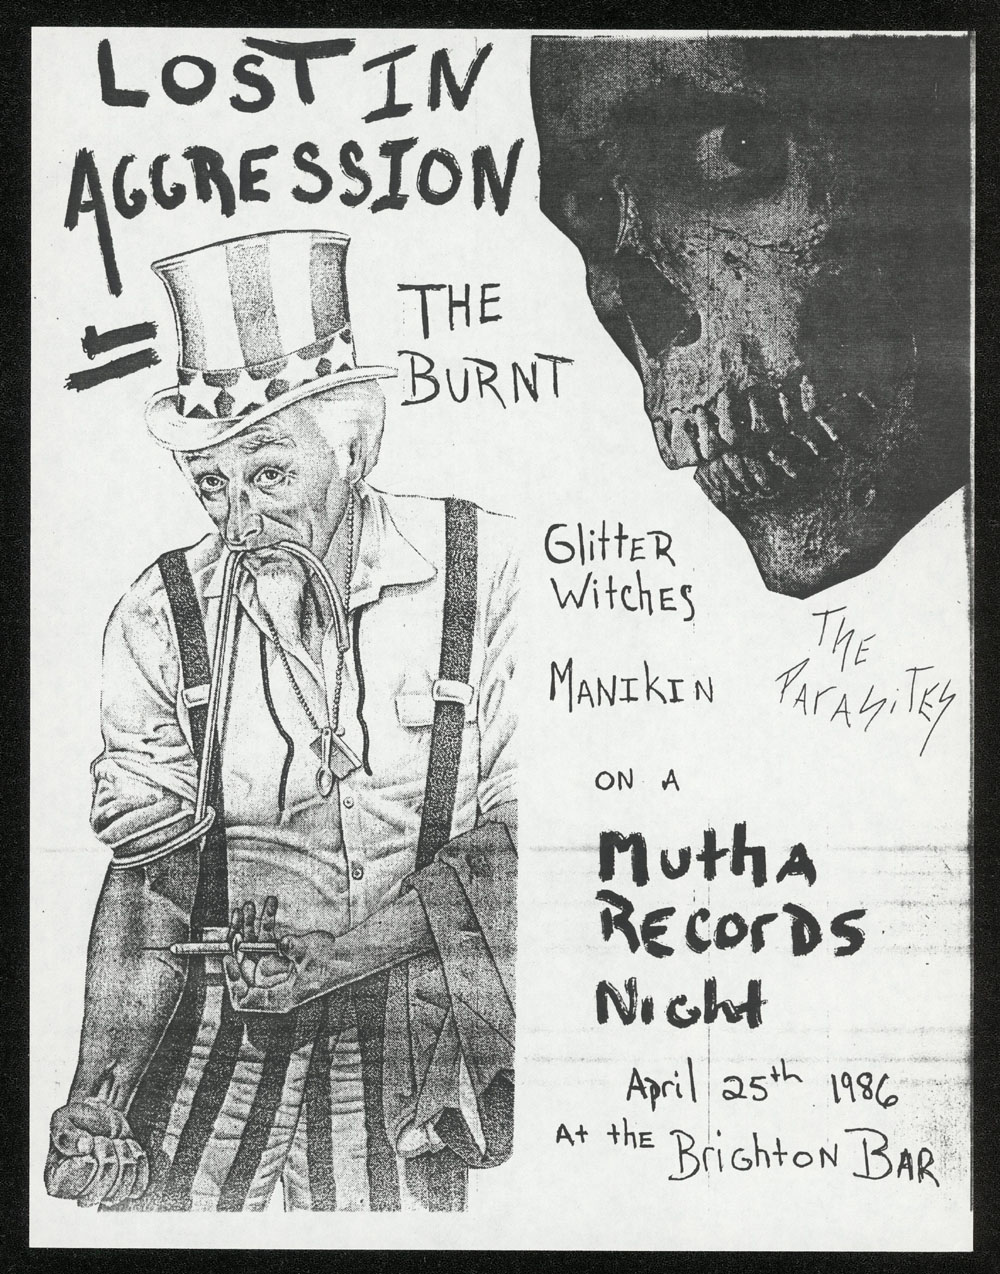 LOST IN AGGRESSION w/ Burnt, Glitter Witch, Manikin, Parasites at Brighton Bar